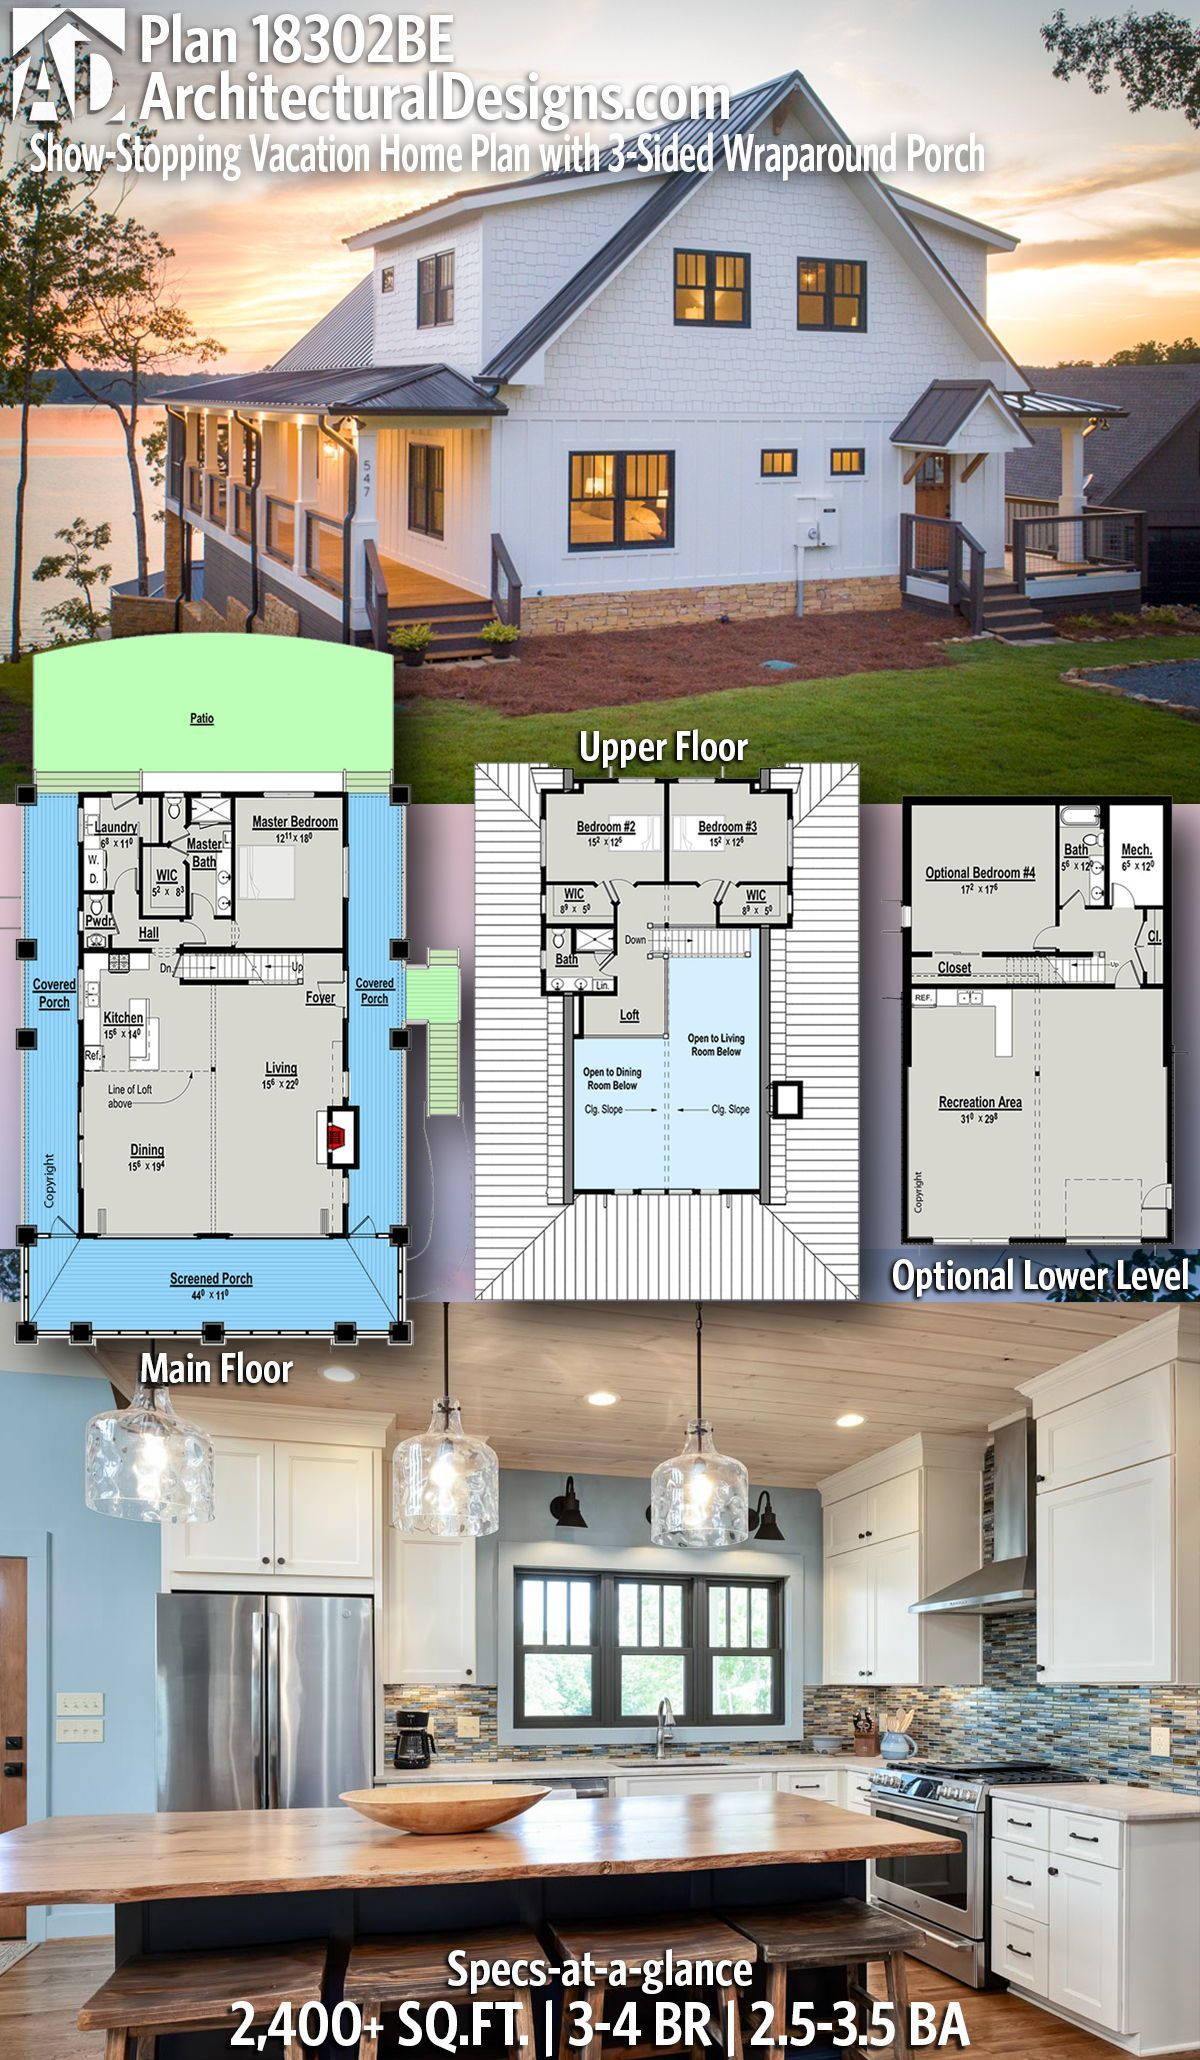 Plan 18302BE: Show-Stopping Vacation Home Plan with 3-Sided Wraparound Porch